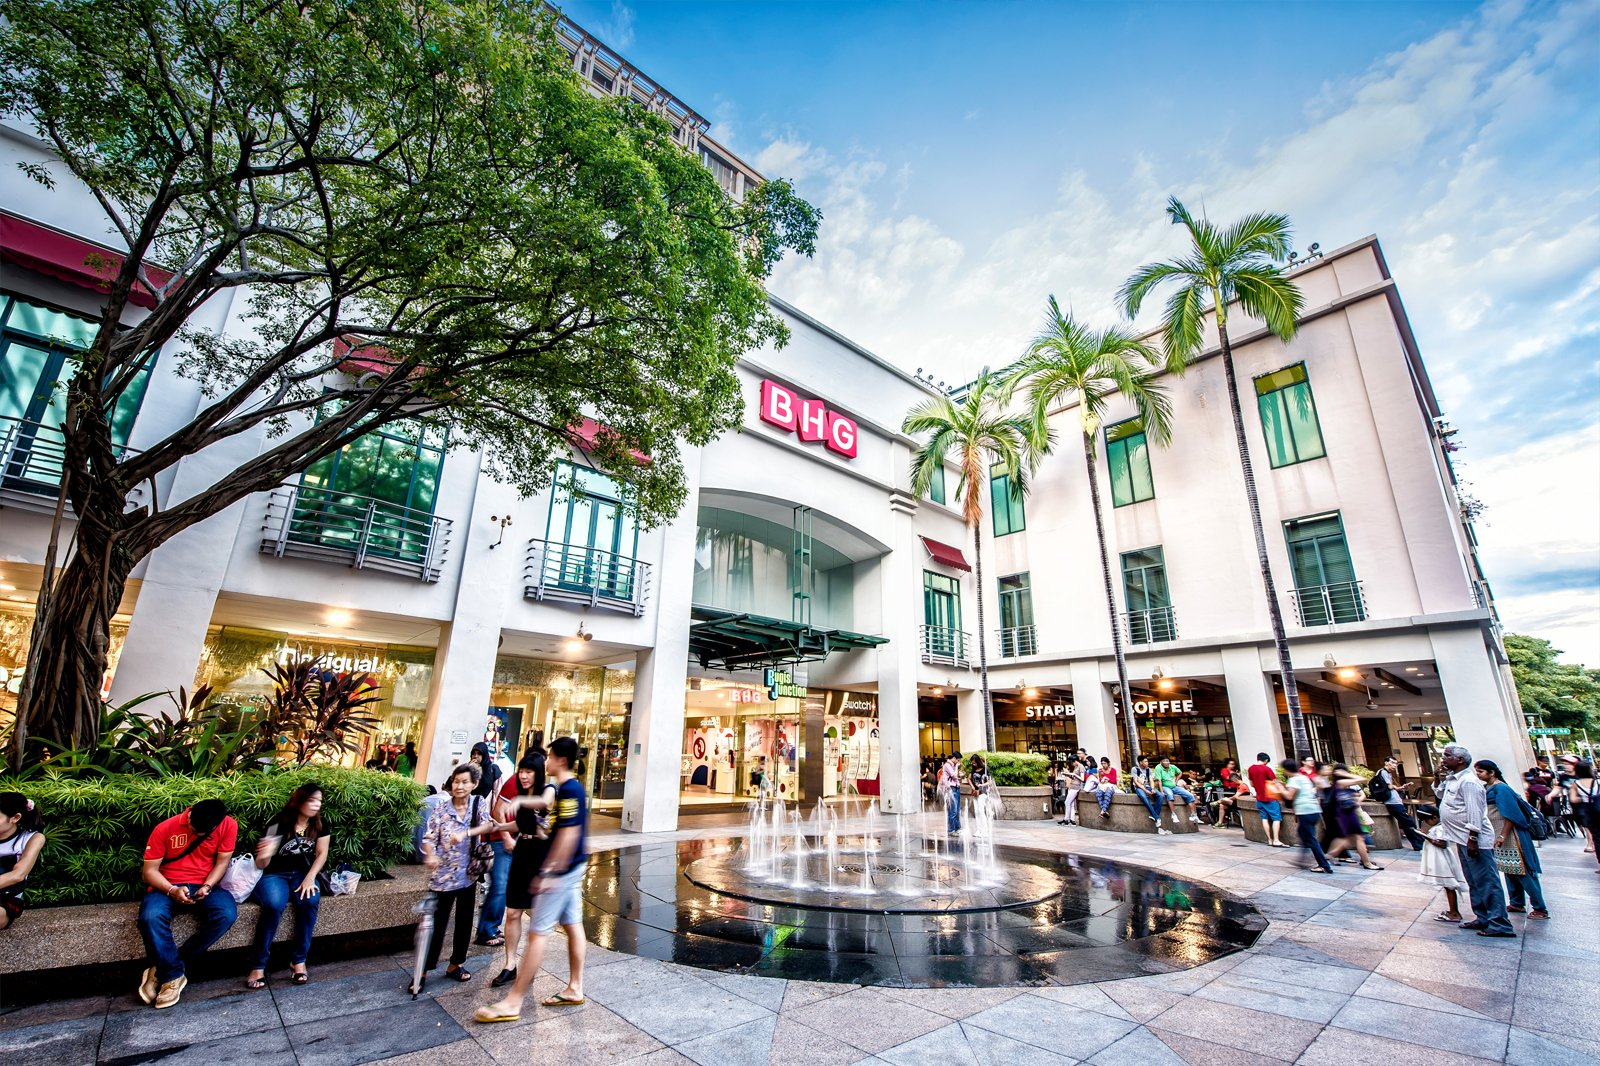 10 Best Shopping Malls in Singapore - Most Popular Singapore Malls